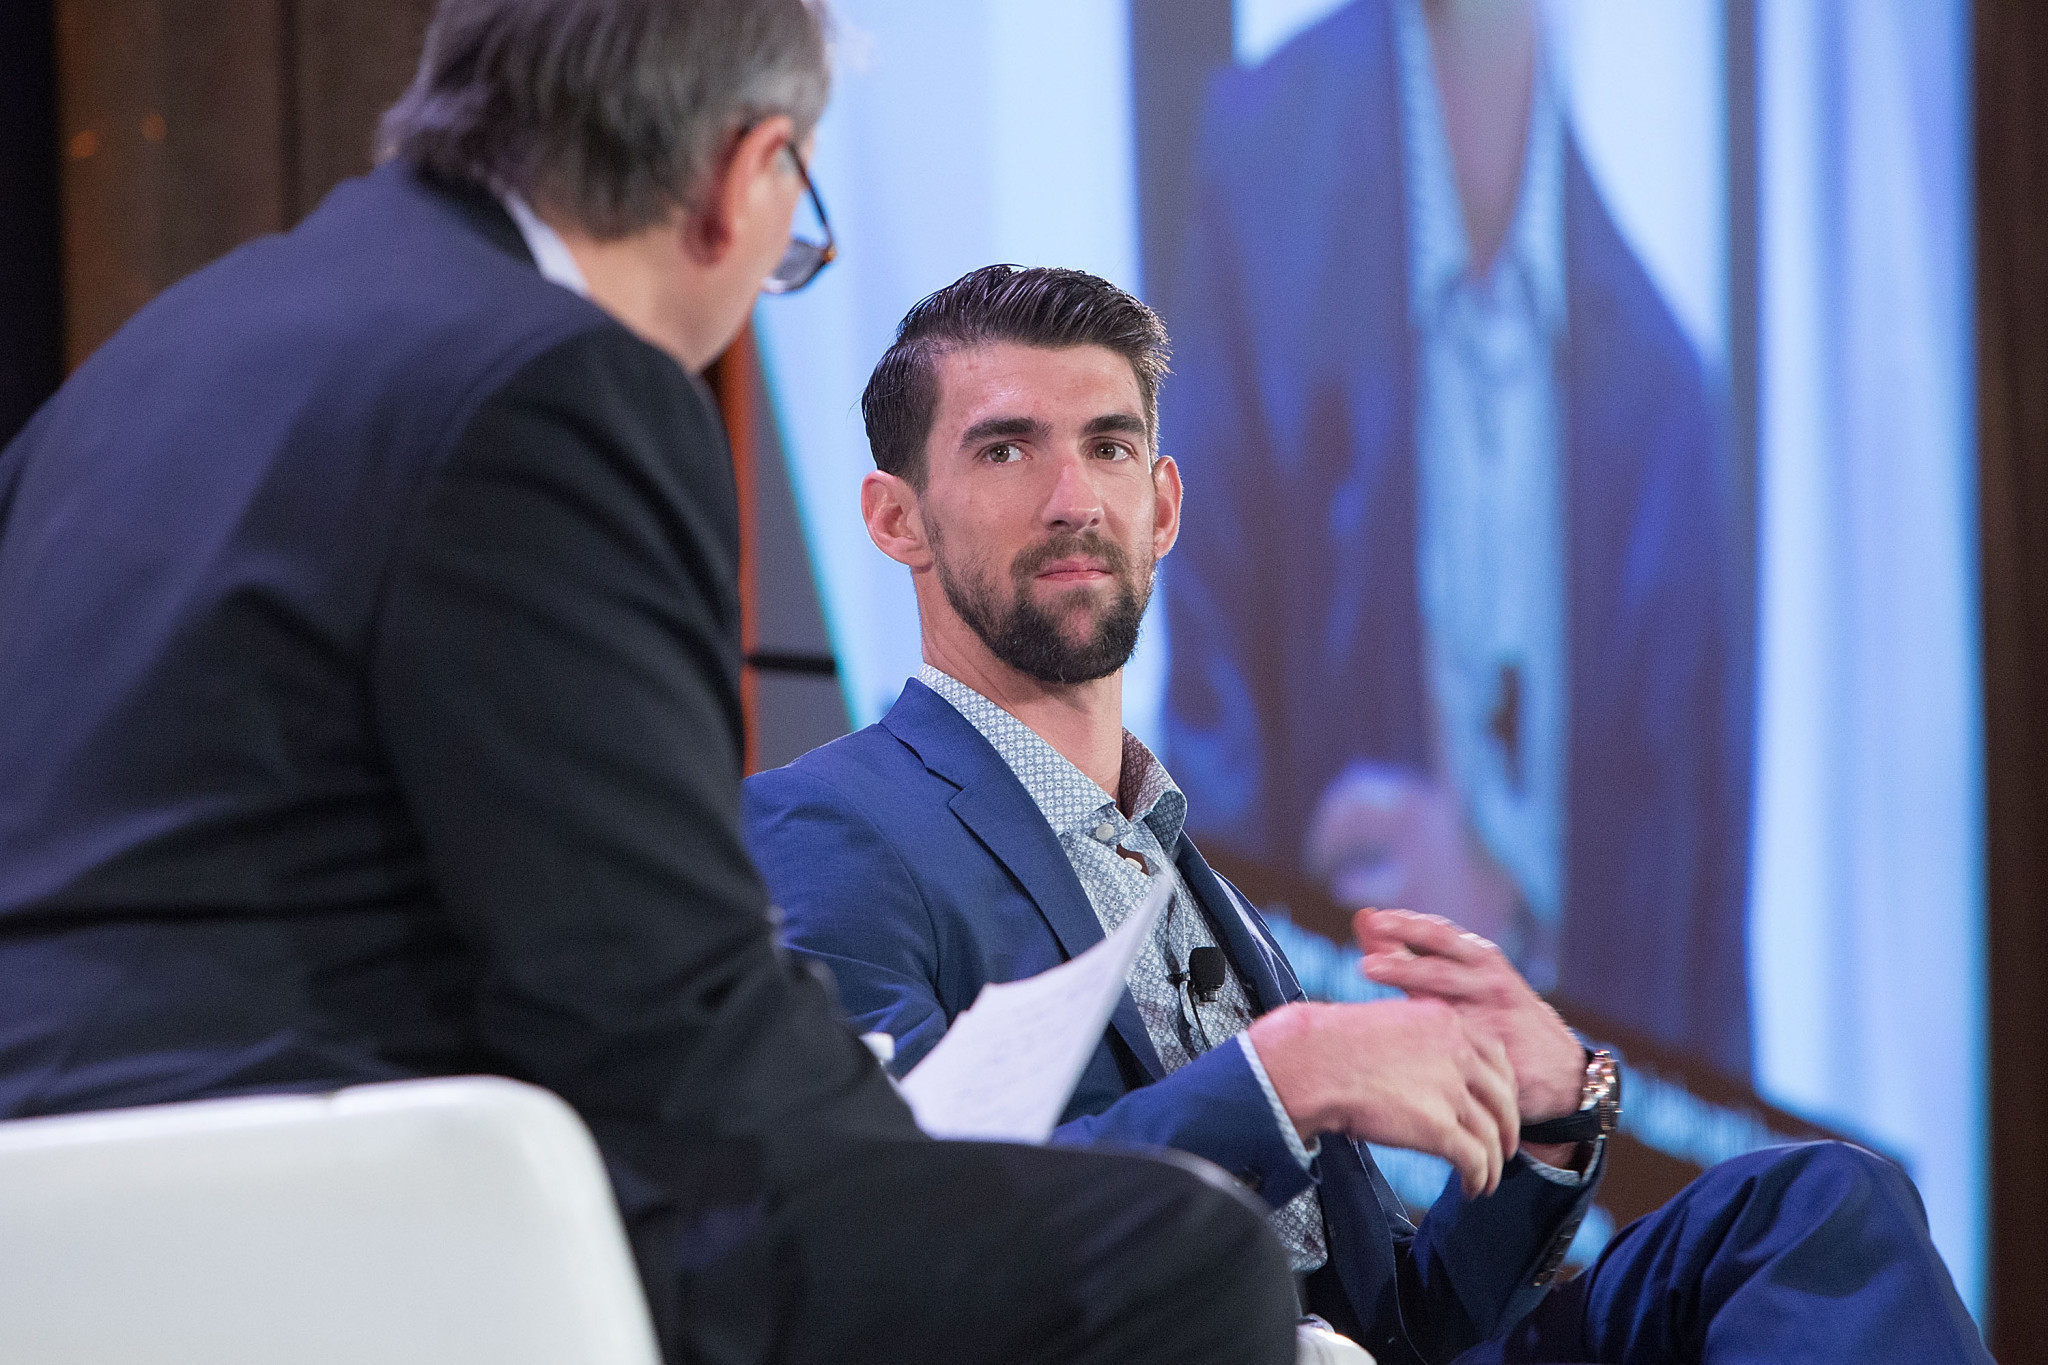 America's 23-time Olympic gold medallist Michael Phelps was among several high-profile athletes to condemn the decision by WADA to reinstate the Russian Anti-Doping Agency ©Getty Images